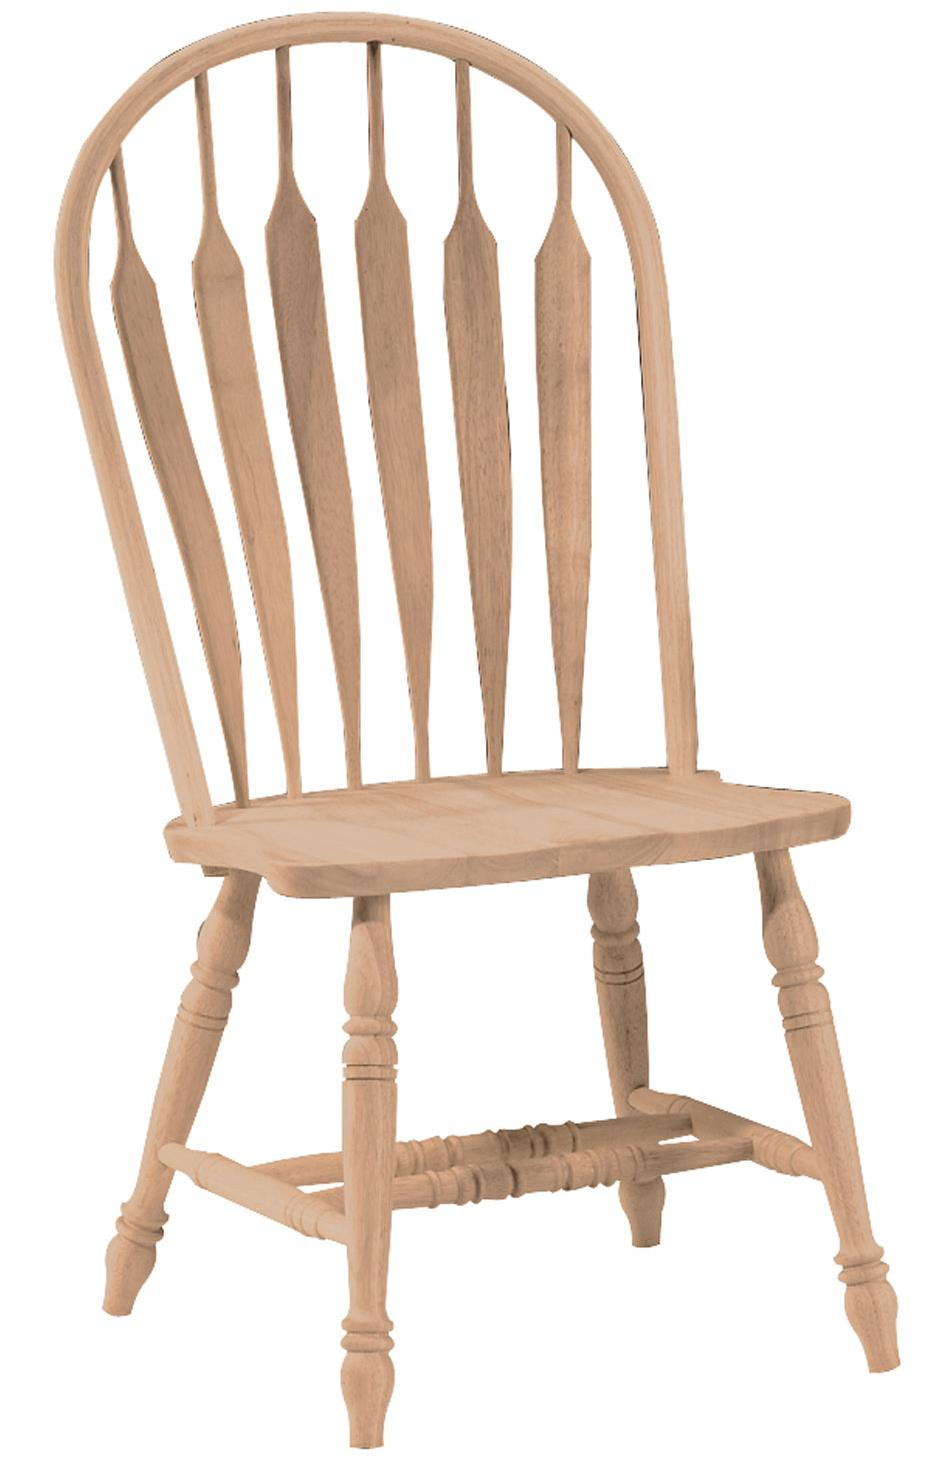 John Thomas SELECT Dining Deluxe Steambent Windsor Chair - Item Number: 1206